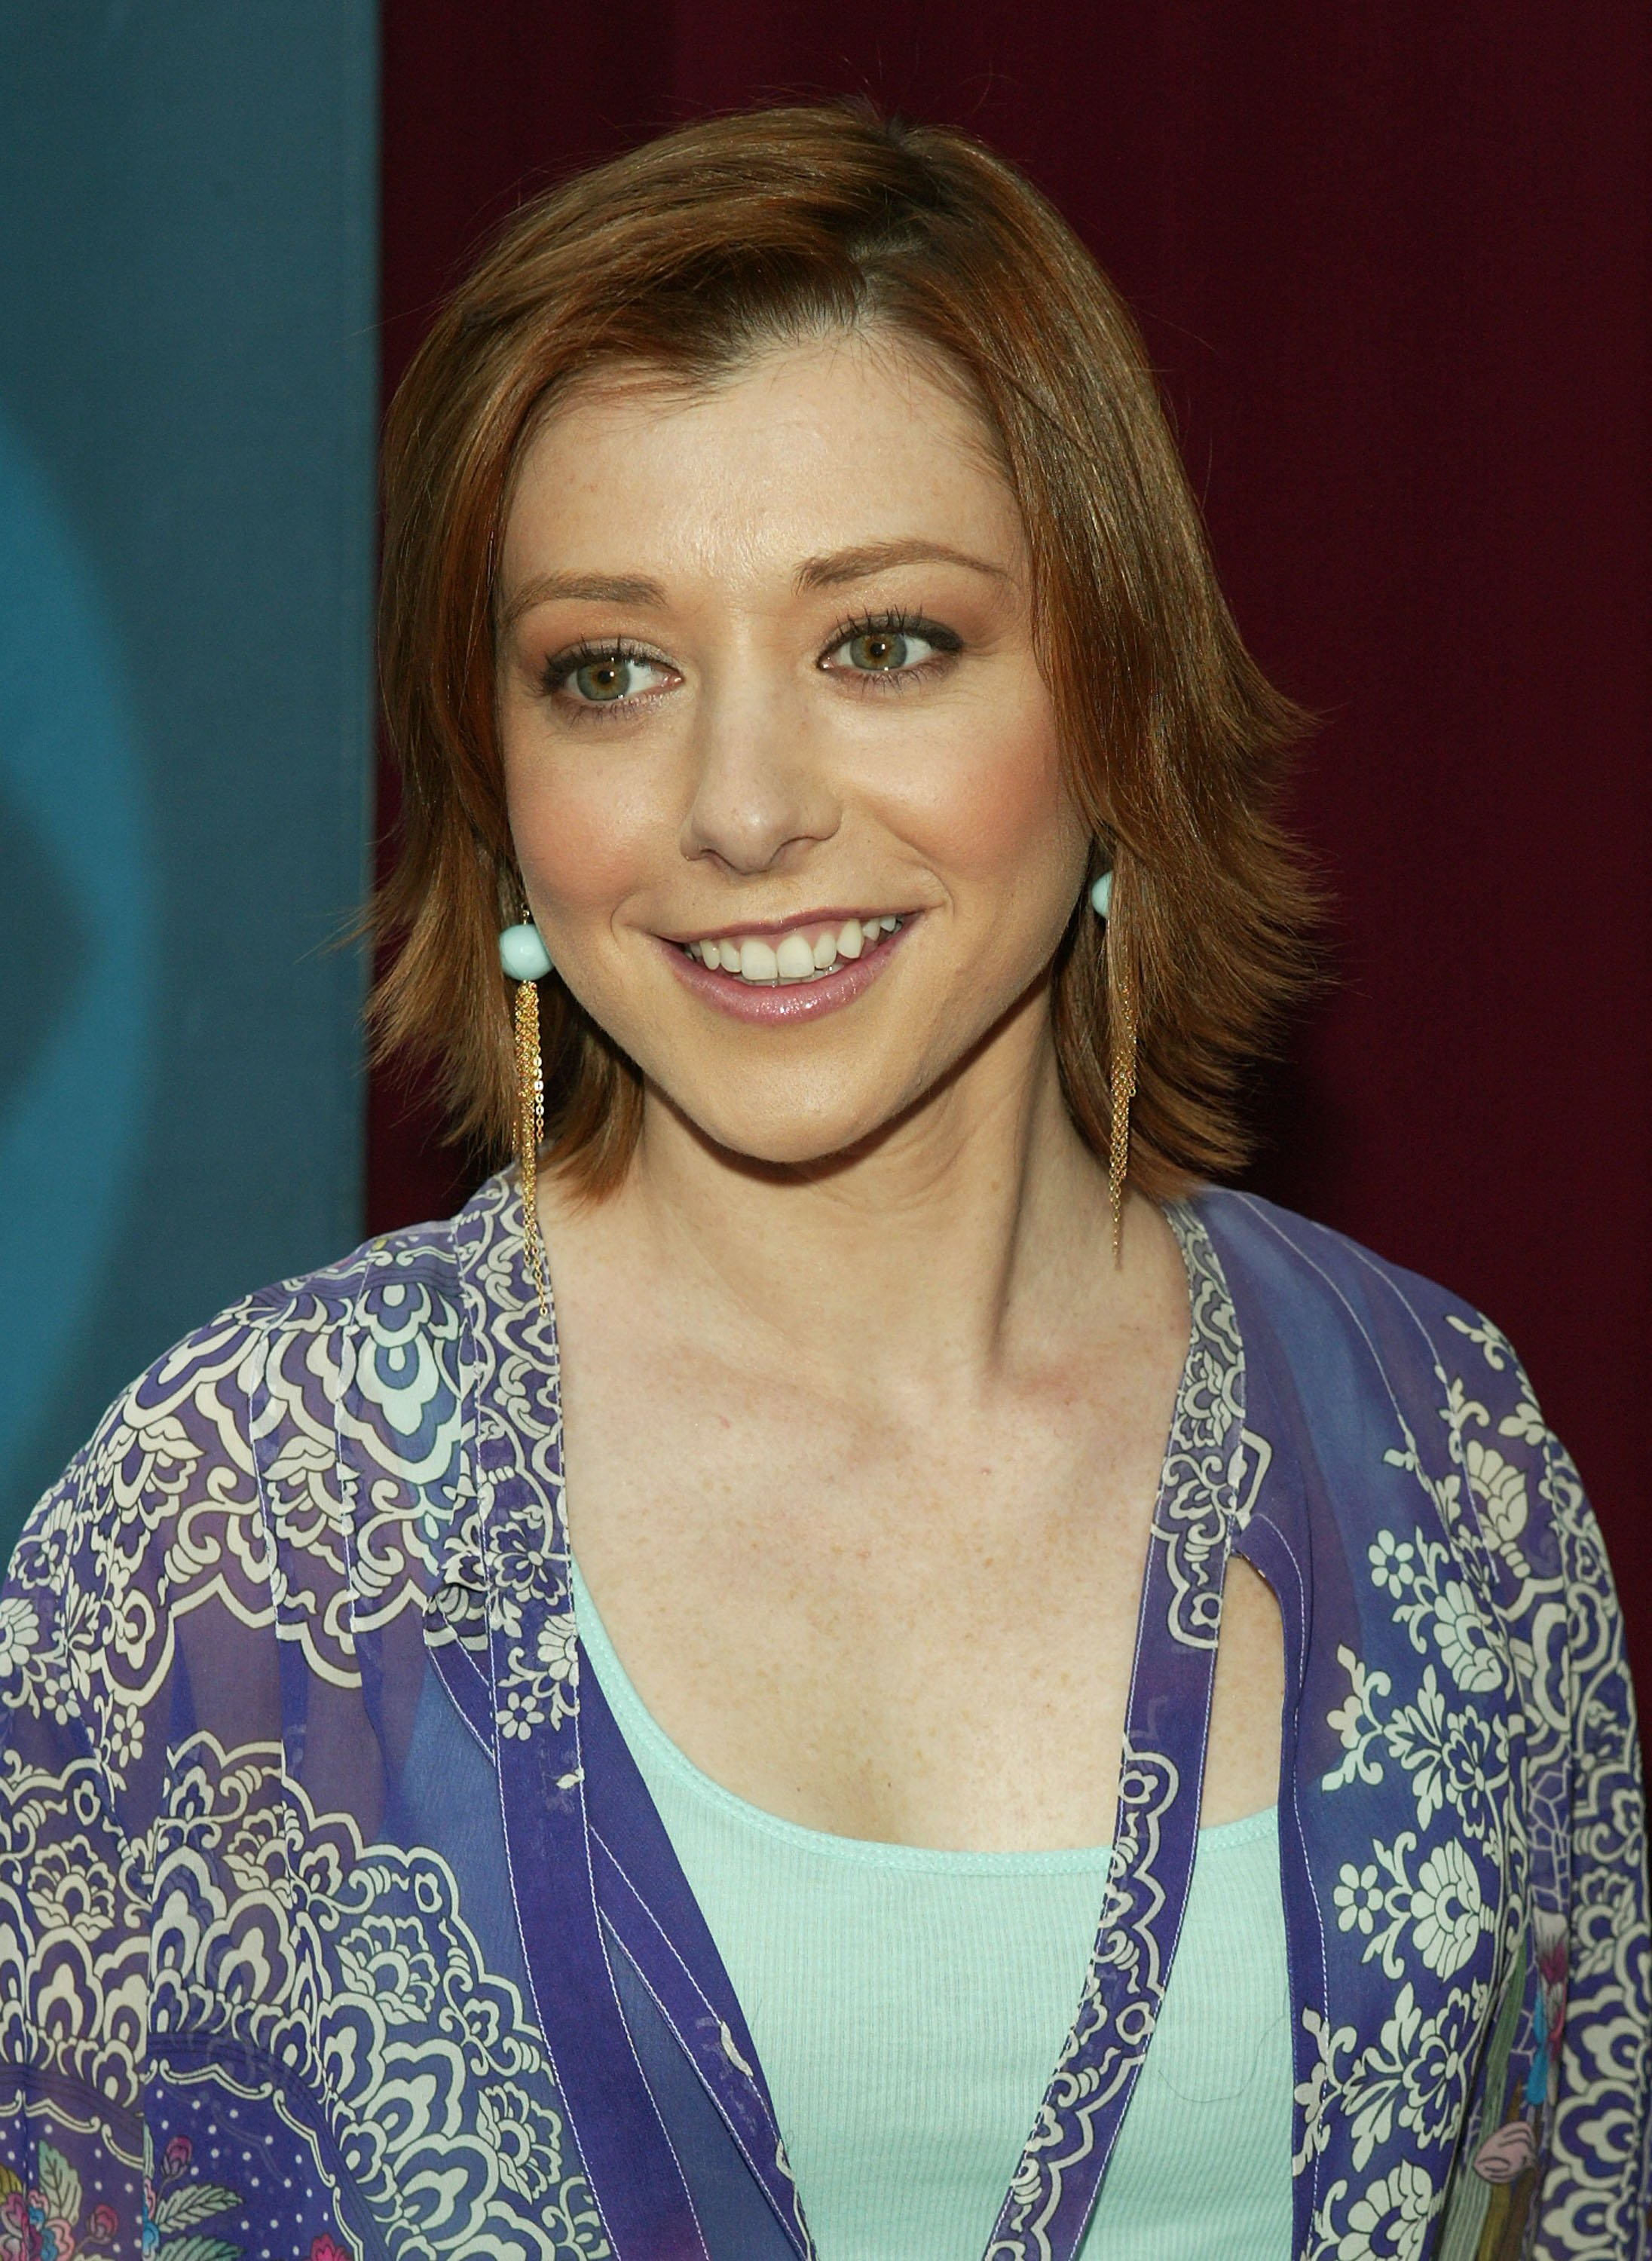 Alyson Hannigan attends the CBS upfront in May 2005 in New York City | Photo: Getty Images